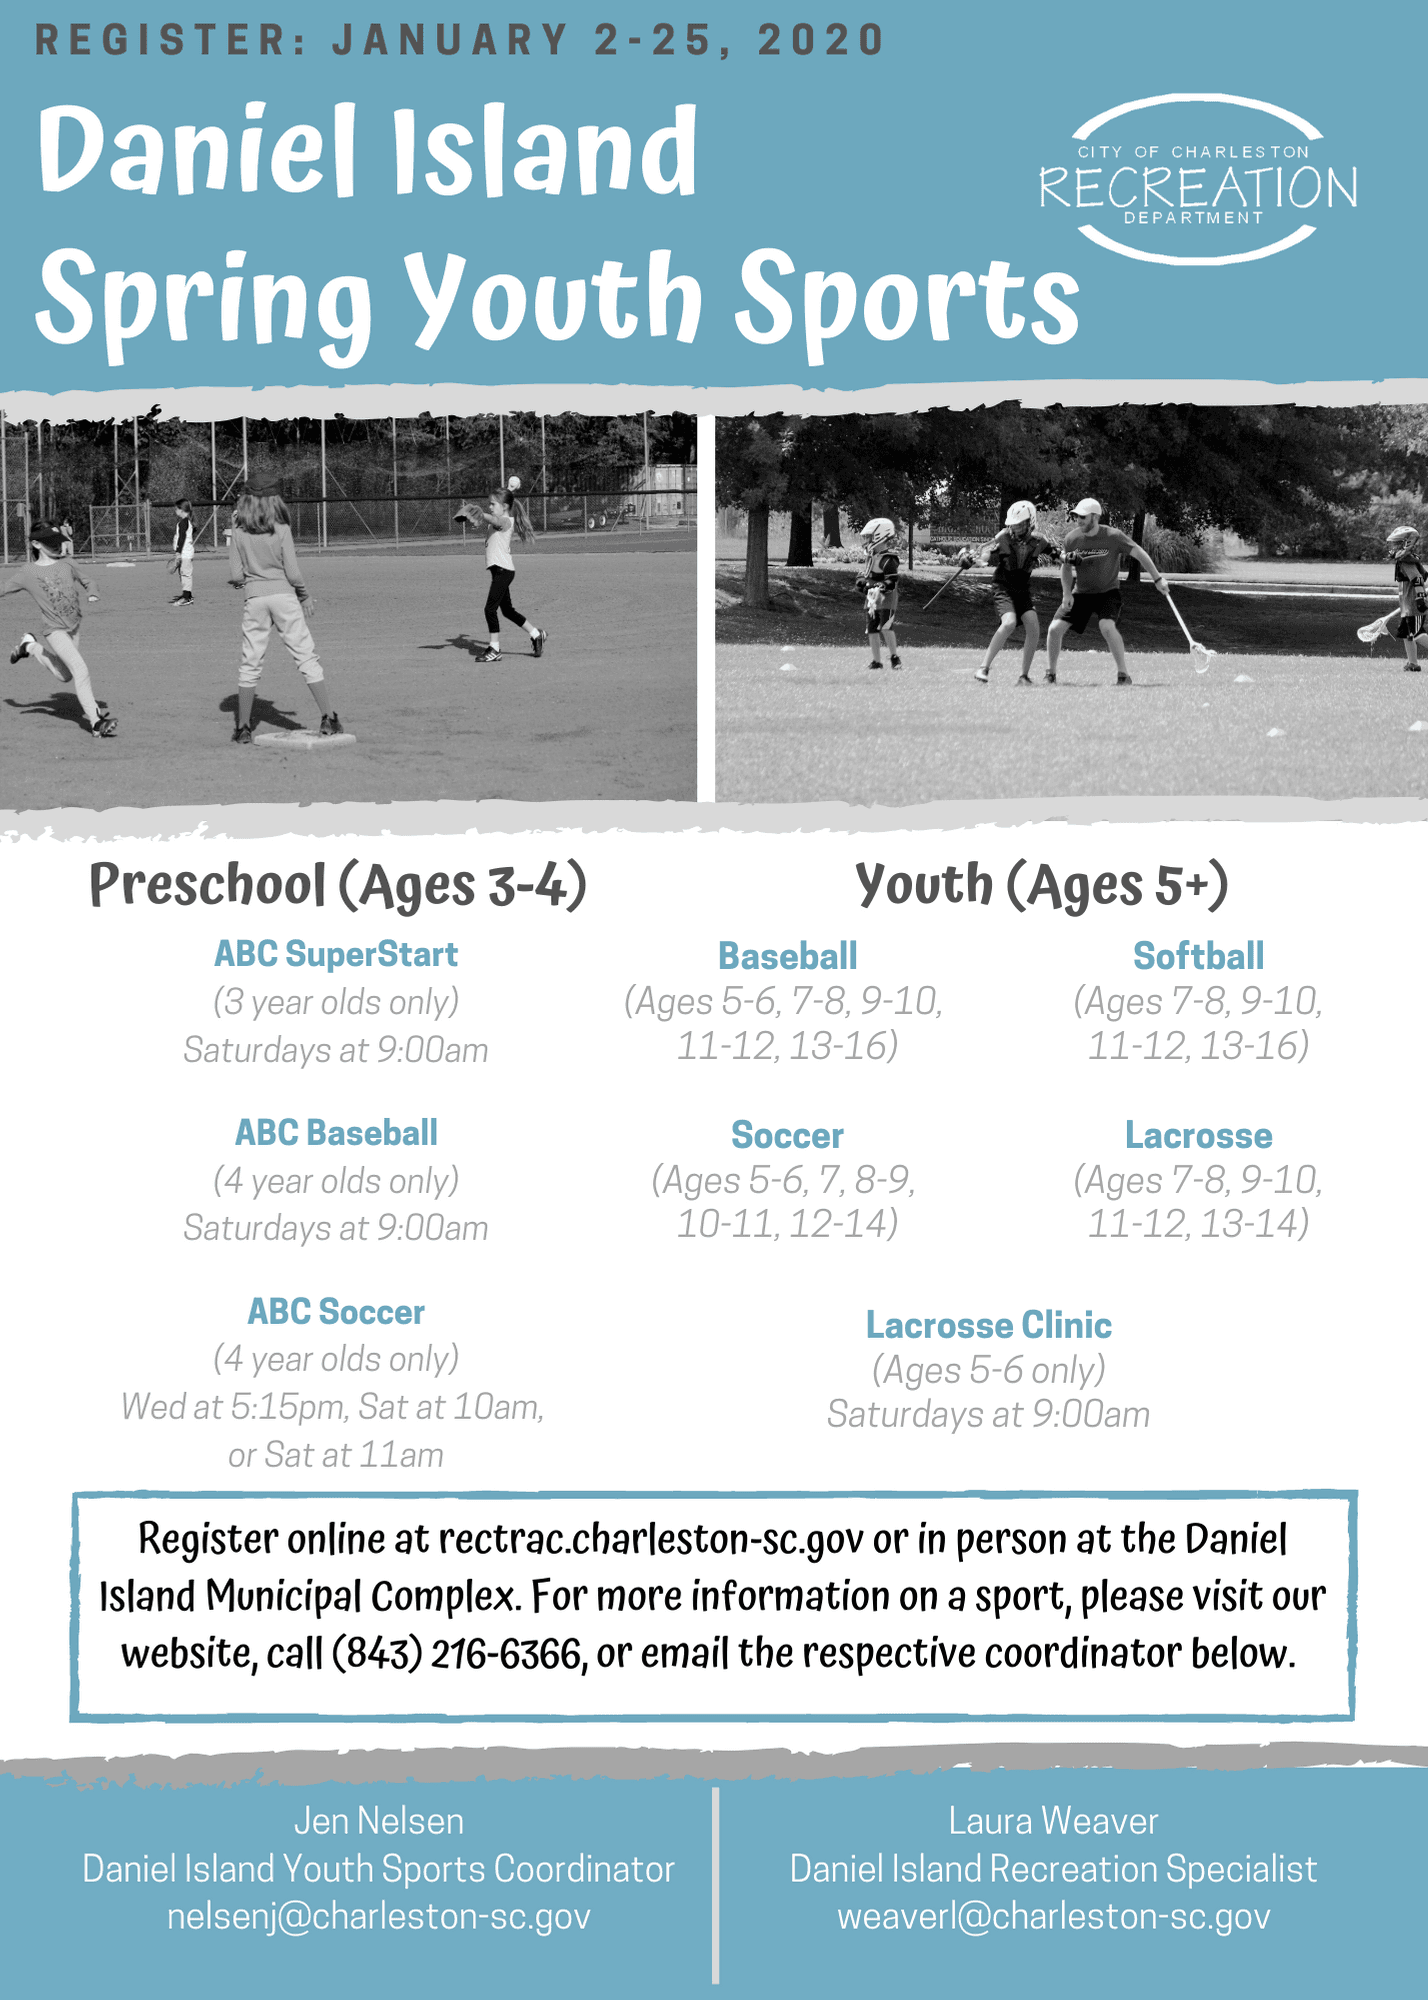 2020 DI Spring Youth Sports